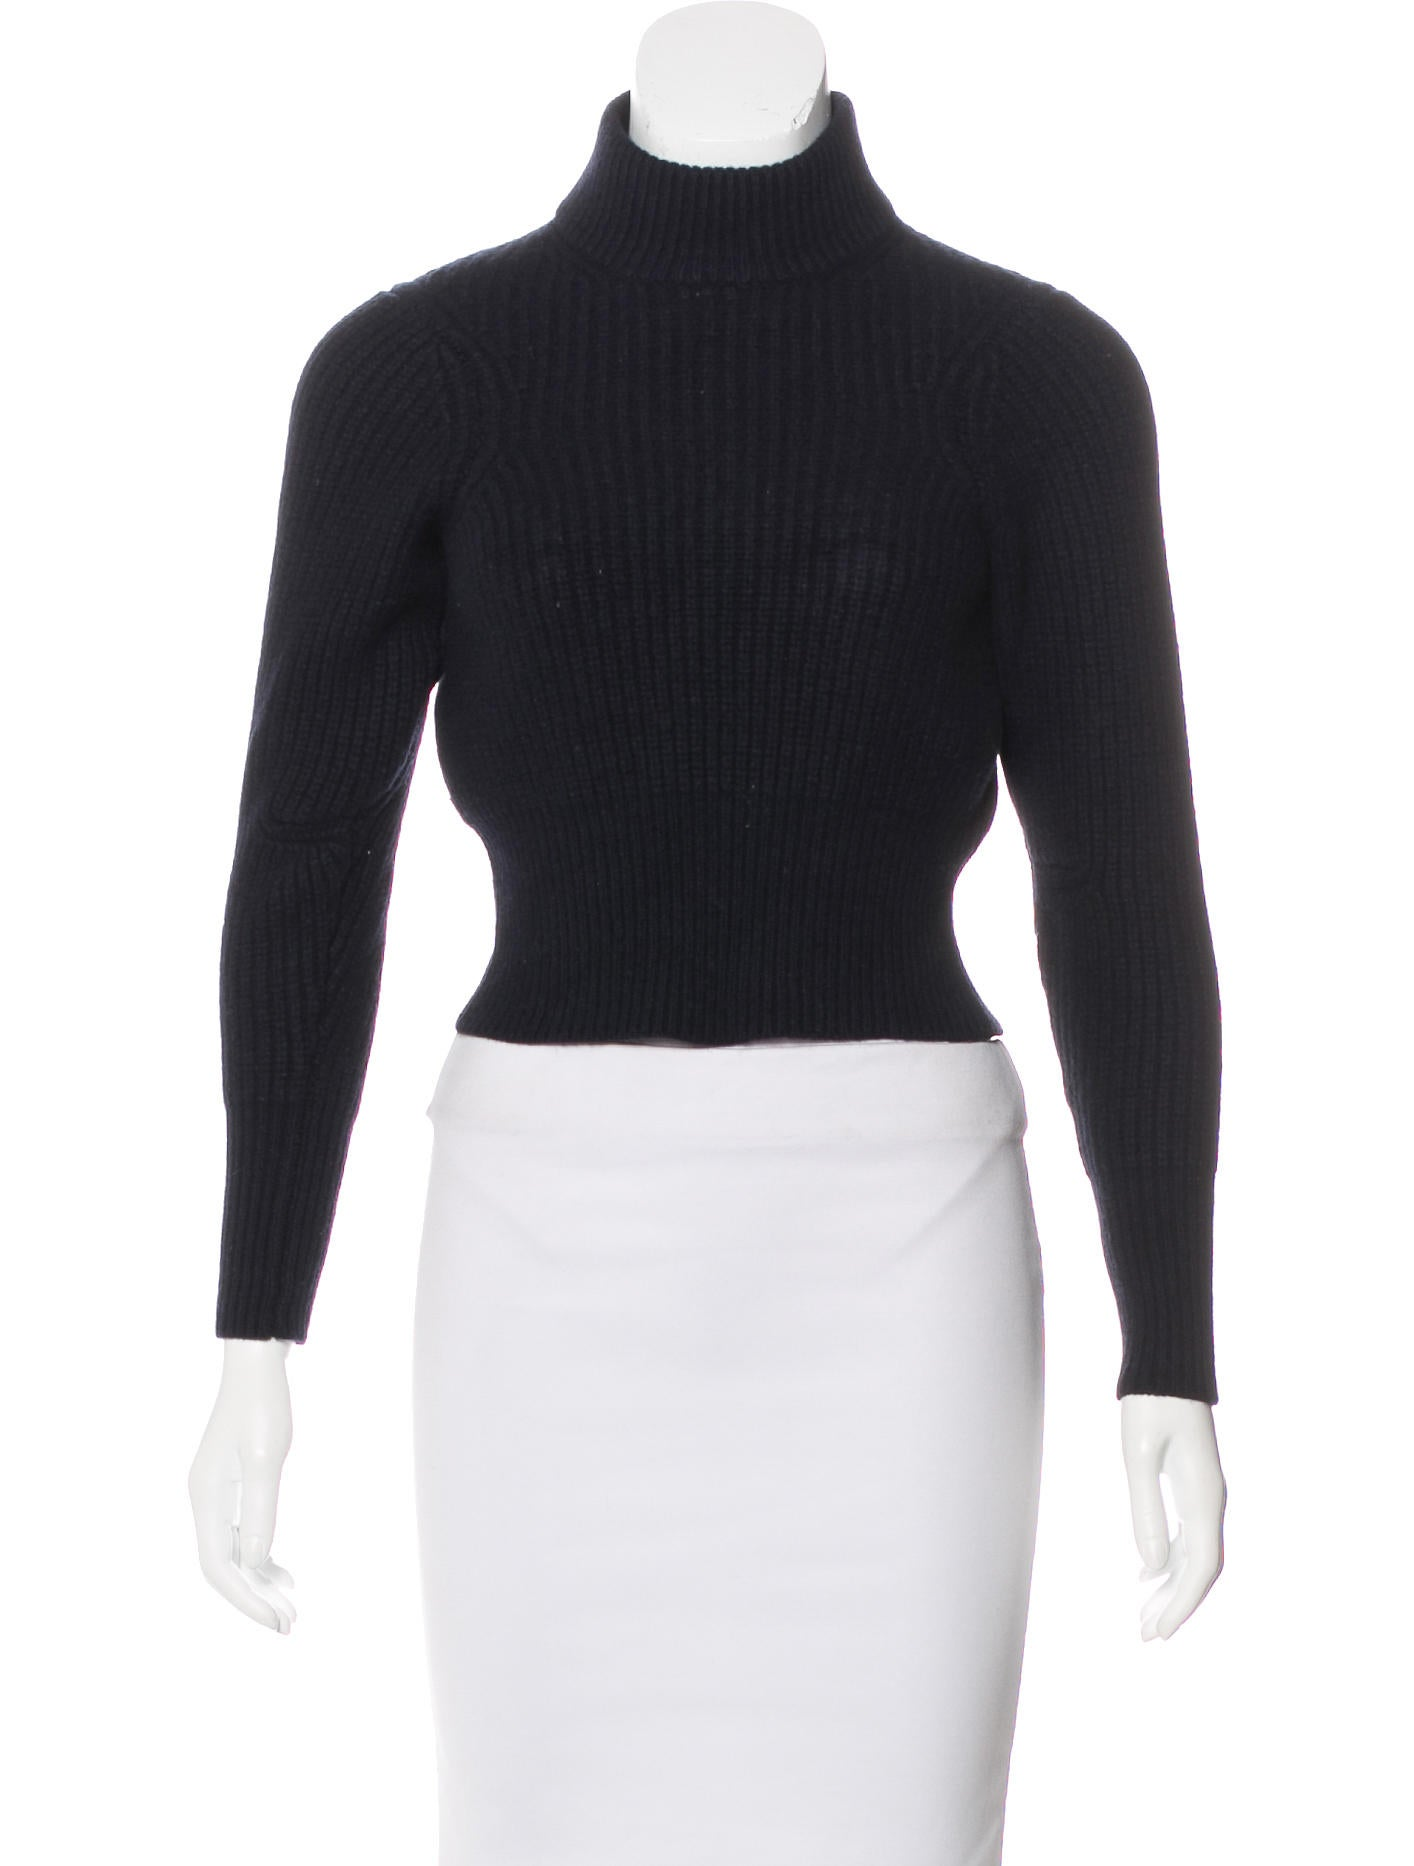 Acne Studios Wool Cropped Sweater - Clothing - ACN31700 | The RealReal